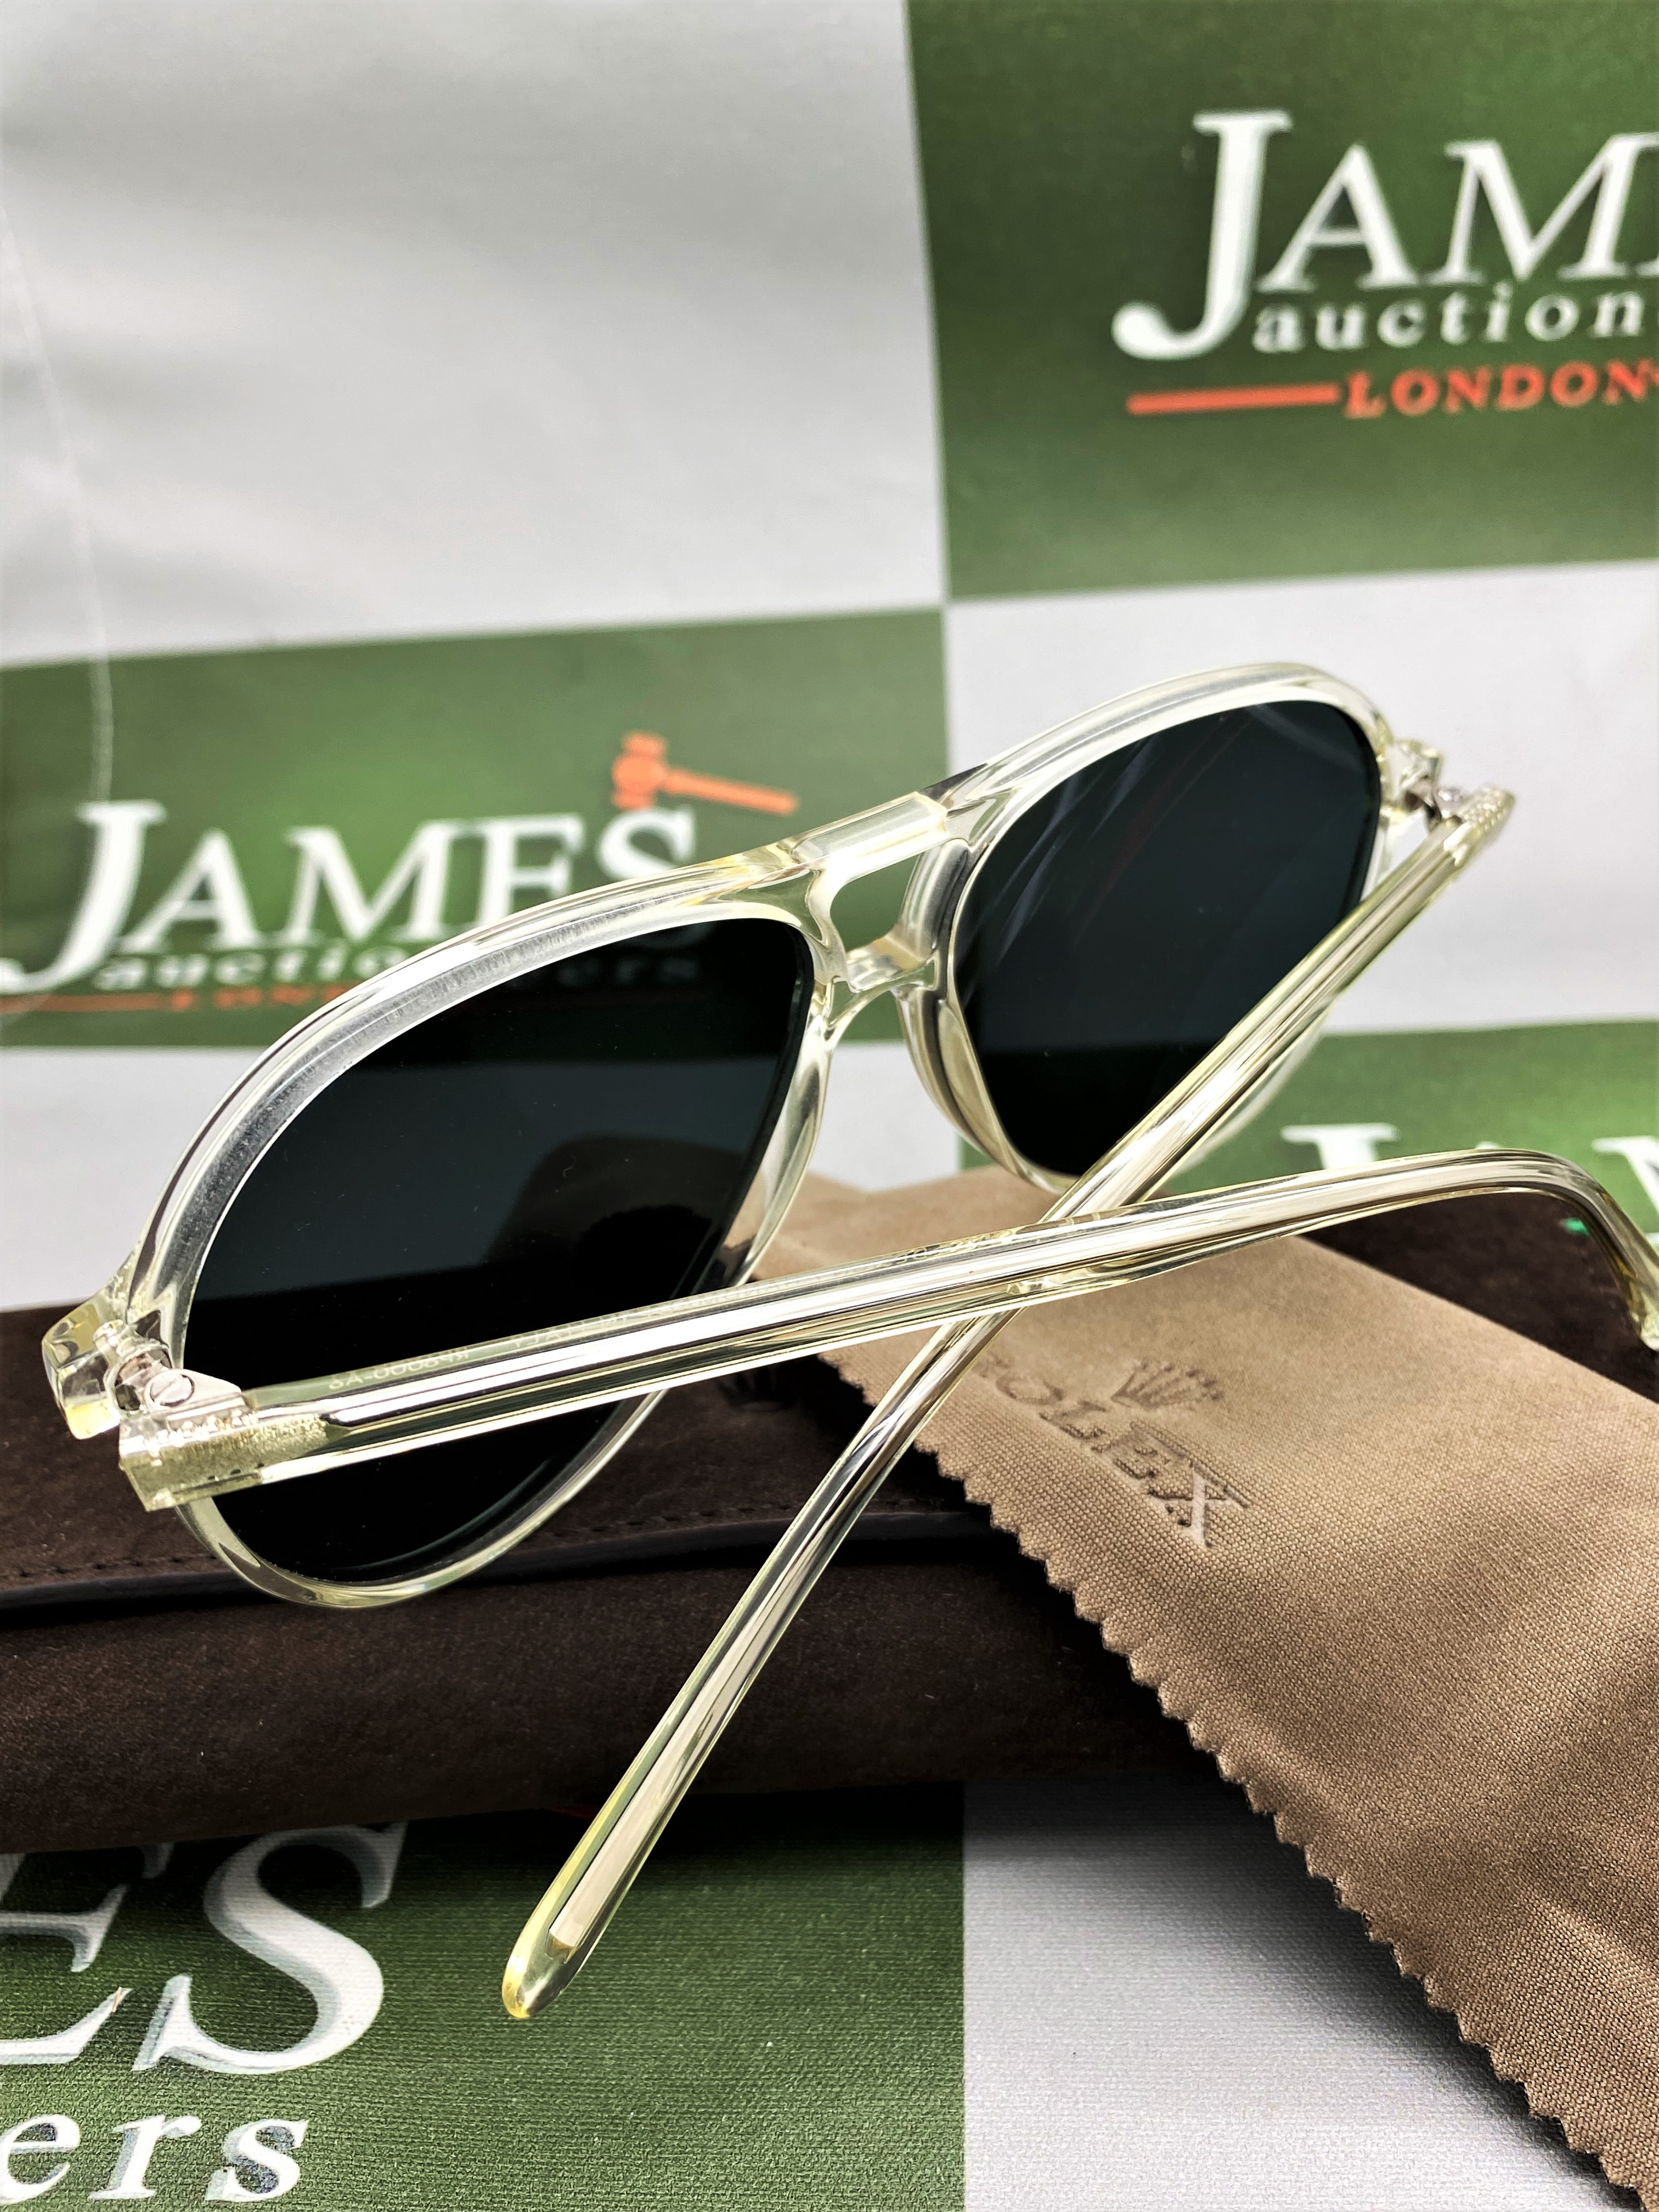 Rolex Official Merchandise Sunglasses-New Examples, Very Rare. - Image 2 of 7